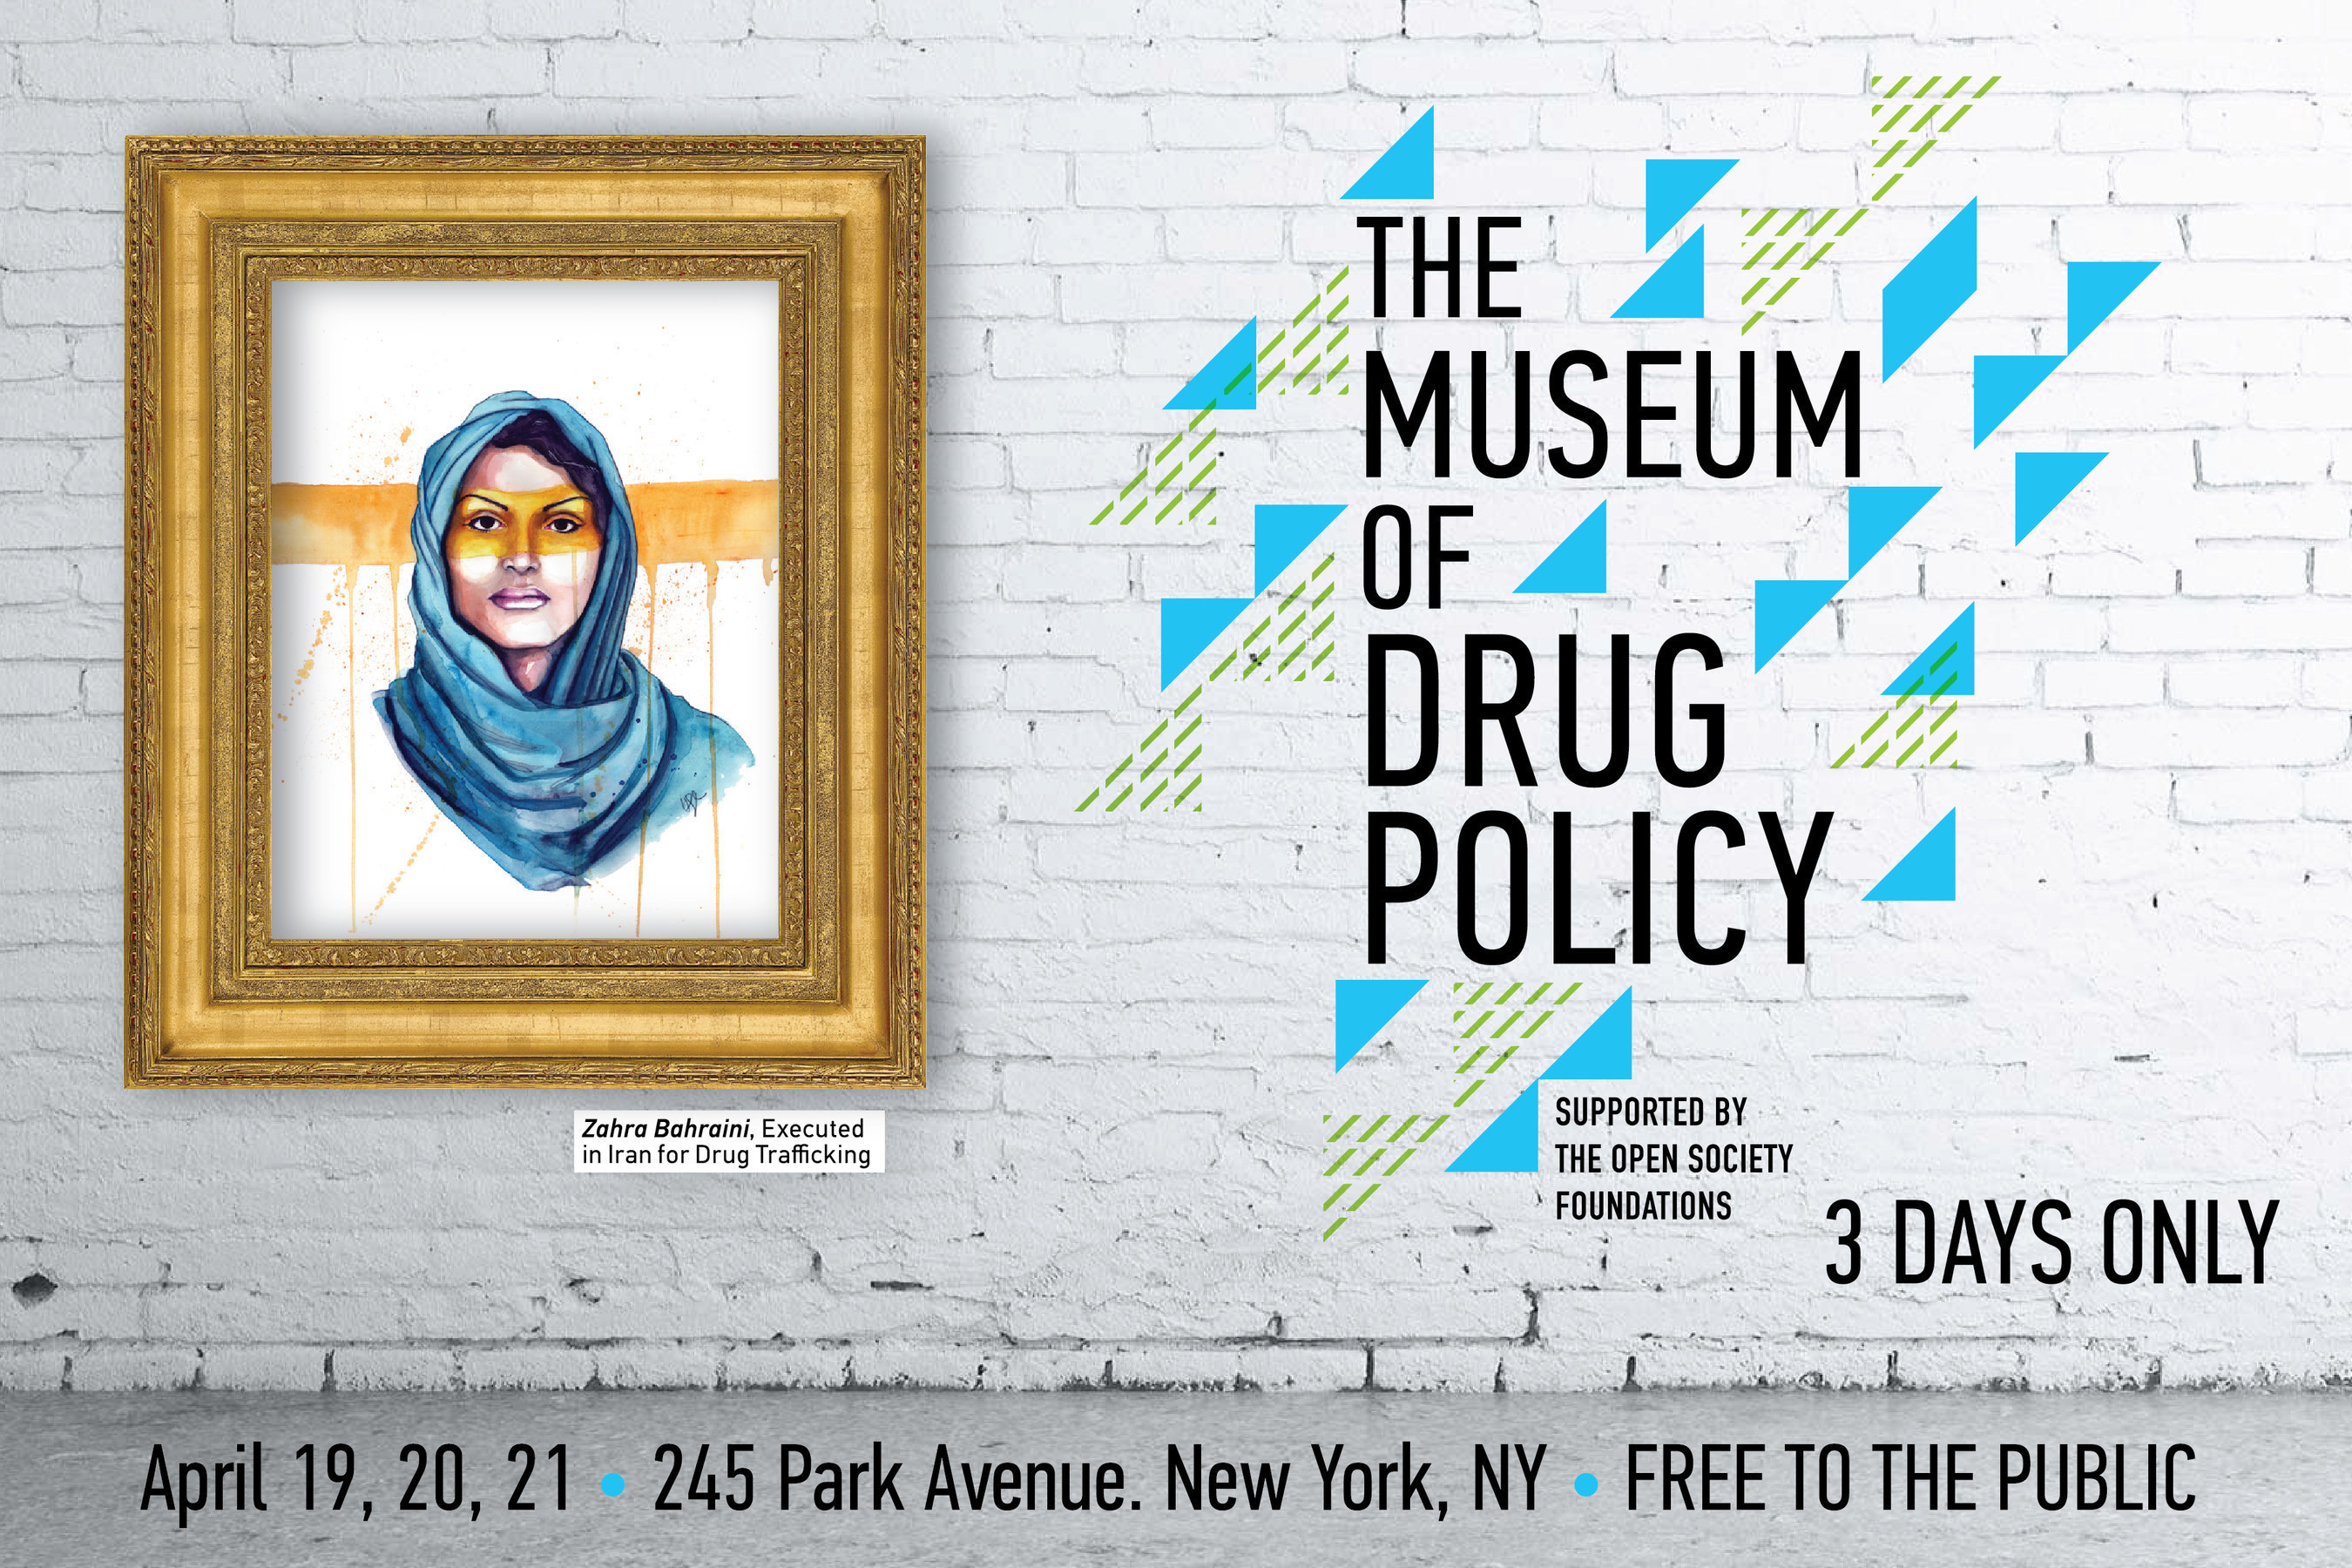 3 DAYS ONLY! FREE! Museum of Drug Policy featuring 40 artists, powerful programs and special guests. 245 Park Ave., NYC.